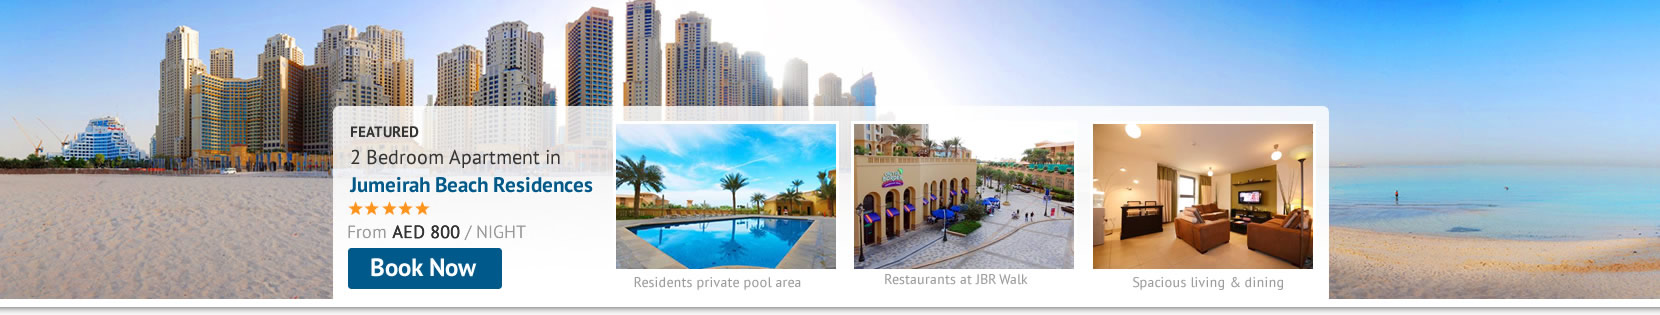 Book your Jumeirah Beach Residence Holiday Rental Apartment Online Now